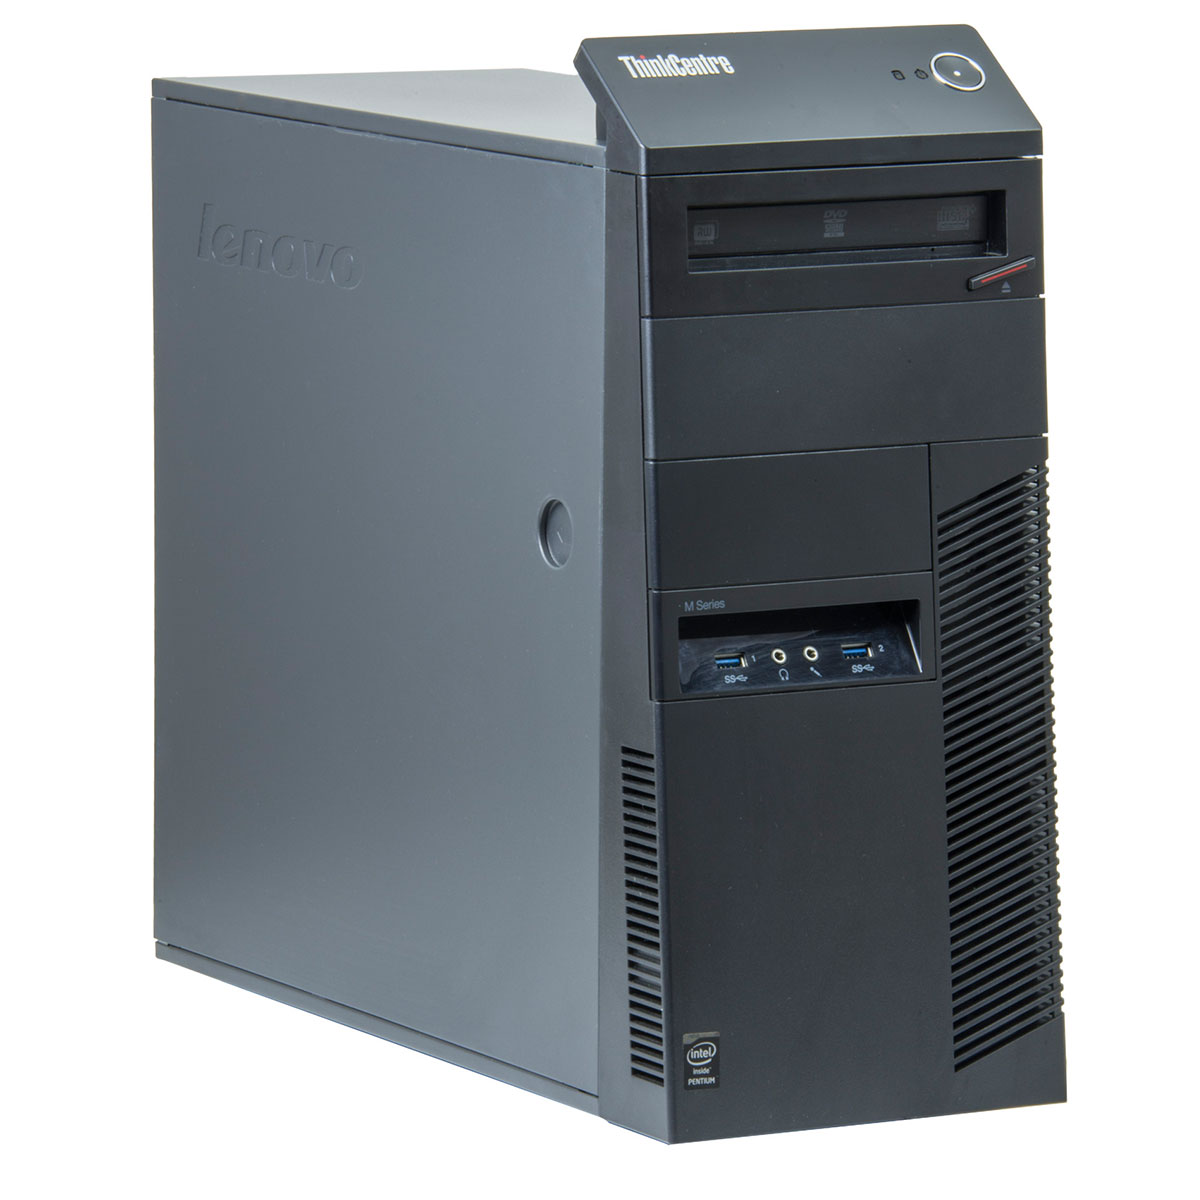 Lenovo ThinkCentre M83 Intel Core i5-4570S 2.90GHz  4GB DDR3  500GB HDD  DVD-RW  Tower  calculator refurbished